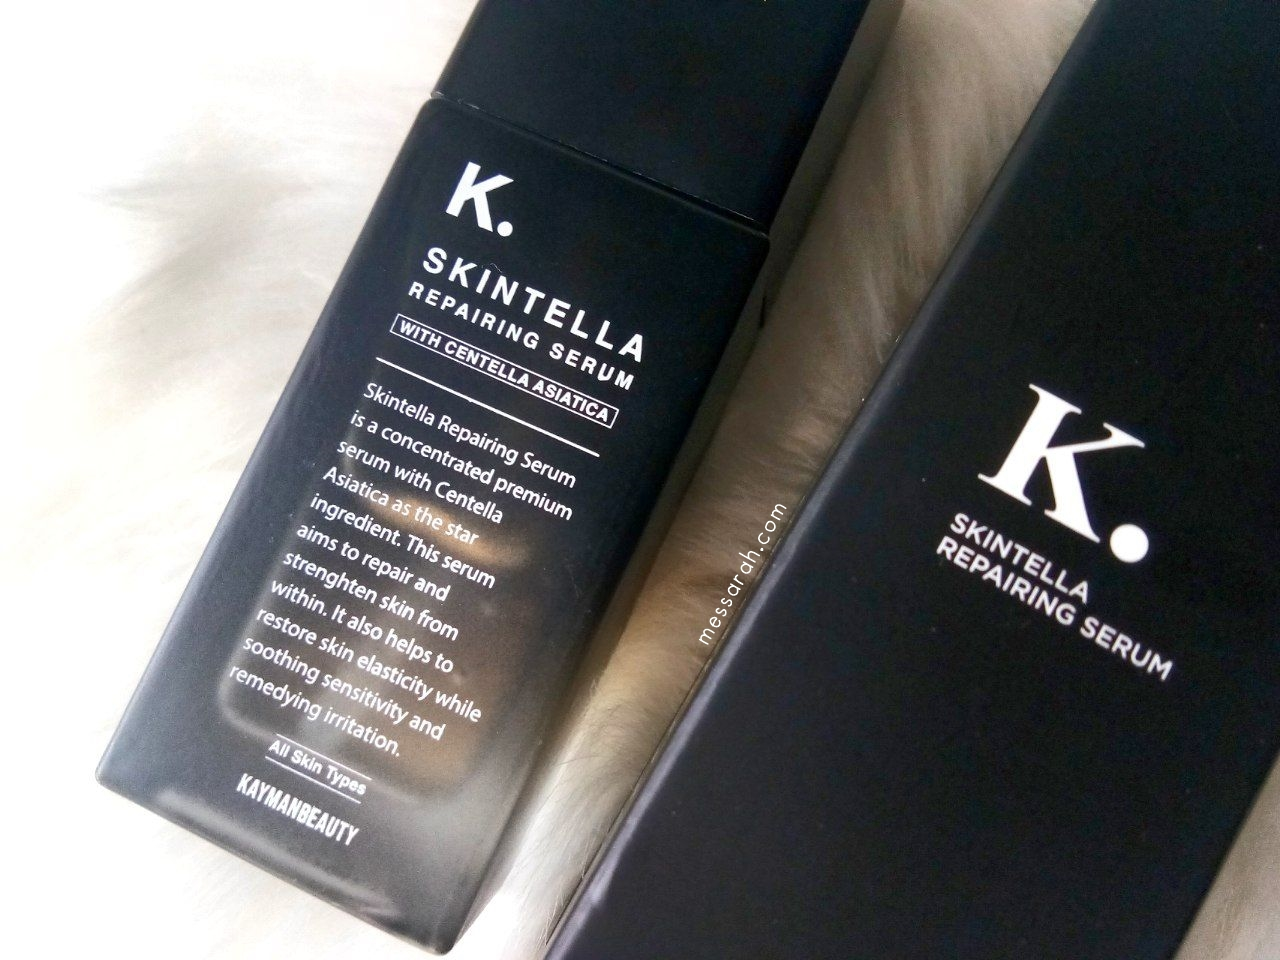 Kayman Beauty Skintella Repairing Serum Review